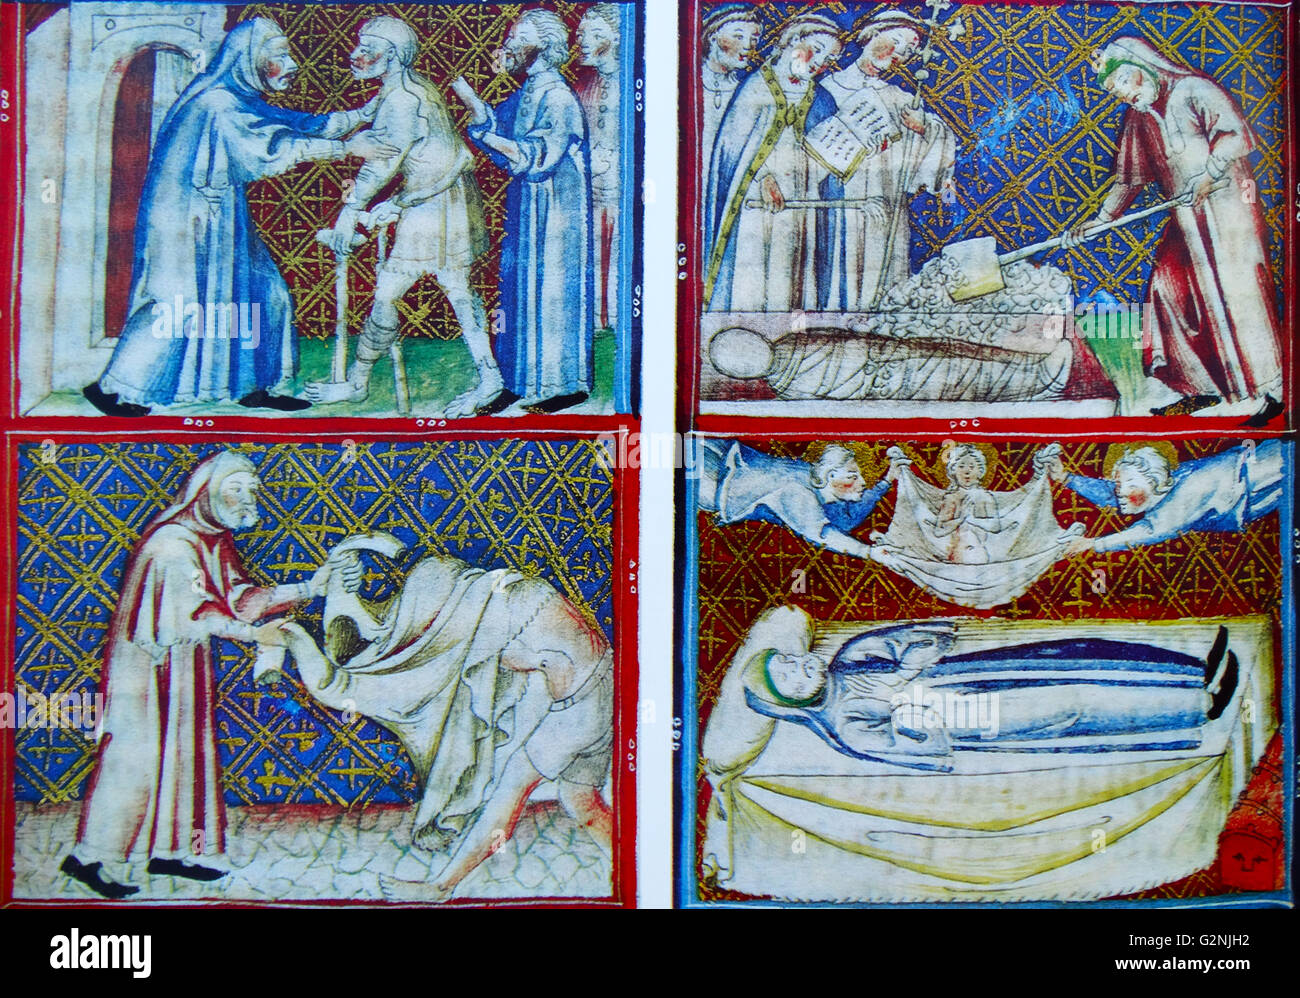 Miniature from the Catalan version of the Breviary d' Amor, depicting the Seven acts of Mercy - Stock Image